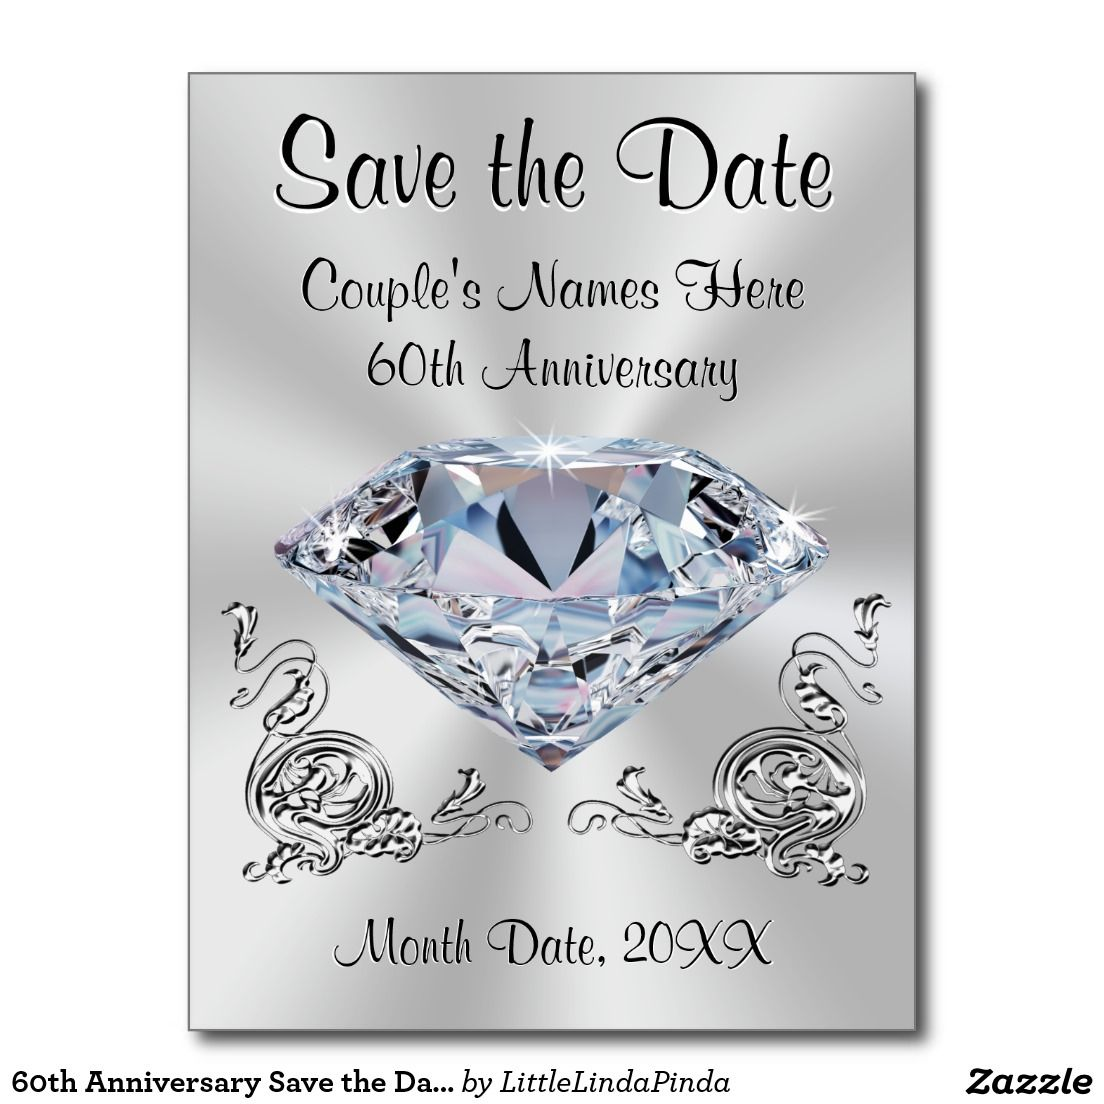 60th Wedding Anniversary Ideas: 60th Anniversary Save The Date Cards PERSONALIZED